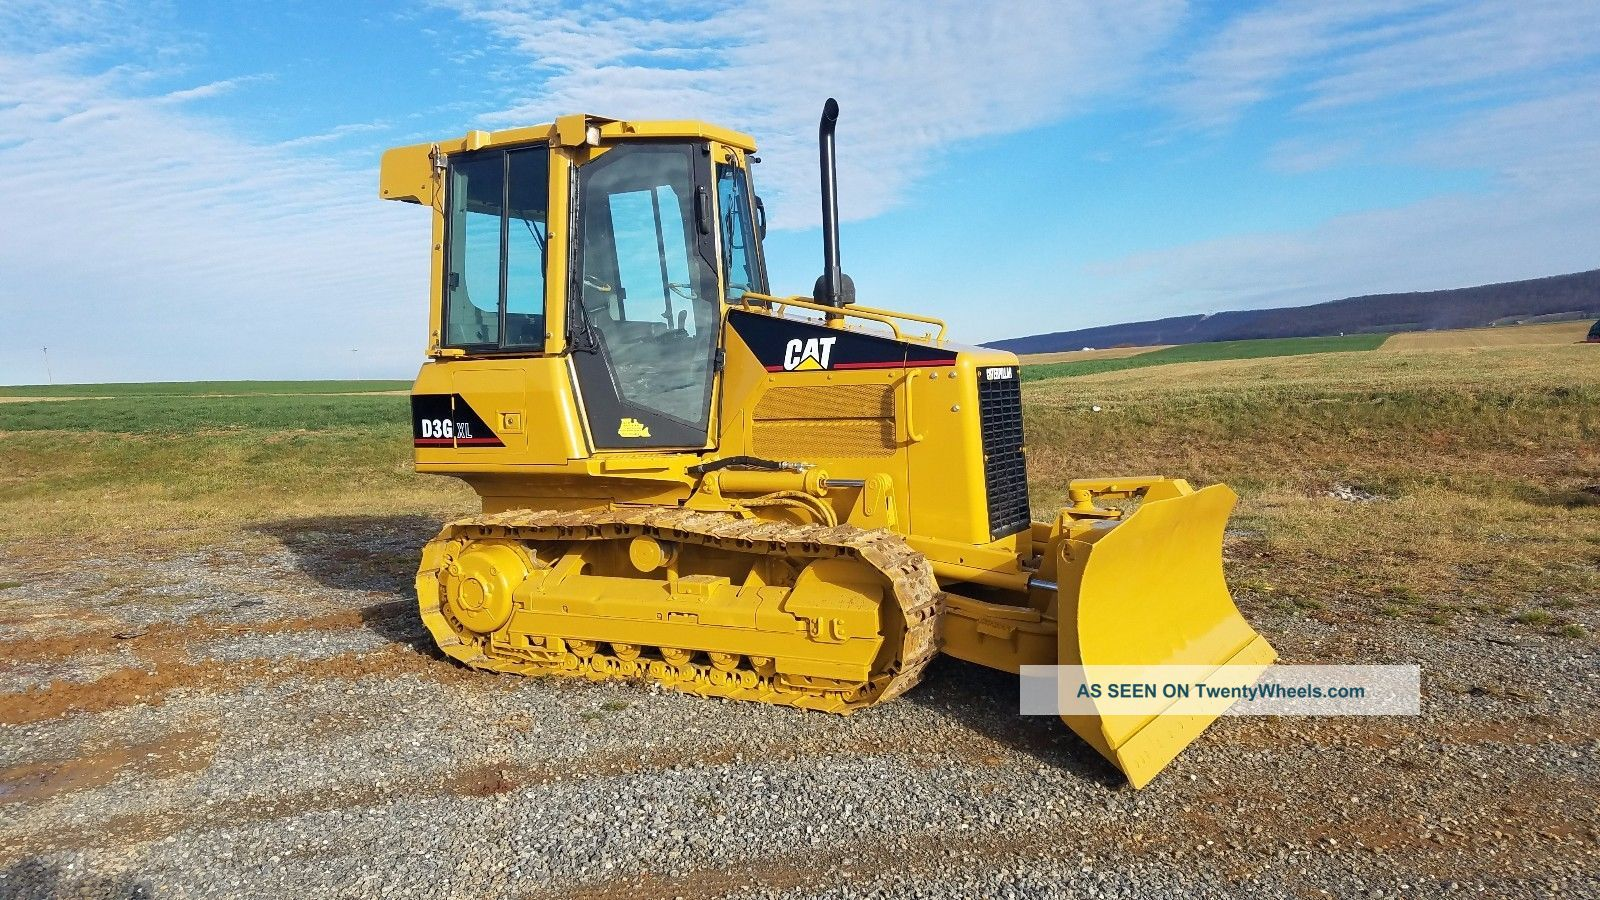 2007 Caterpillar D3g Xl Dozer Crawler Tractor Diesel Engine 6 Way Blade Erops Crawler Dozers & Loaders photo